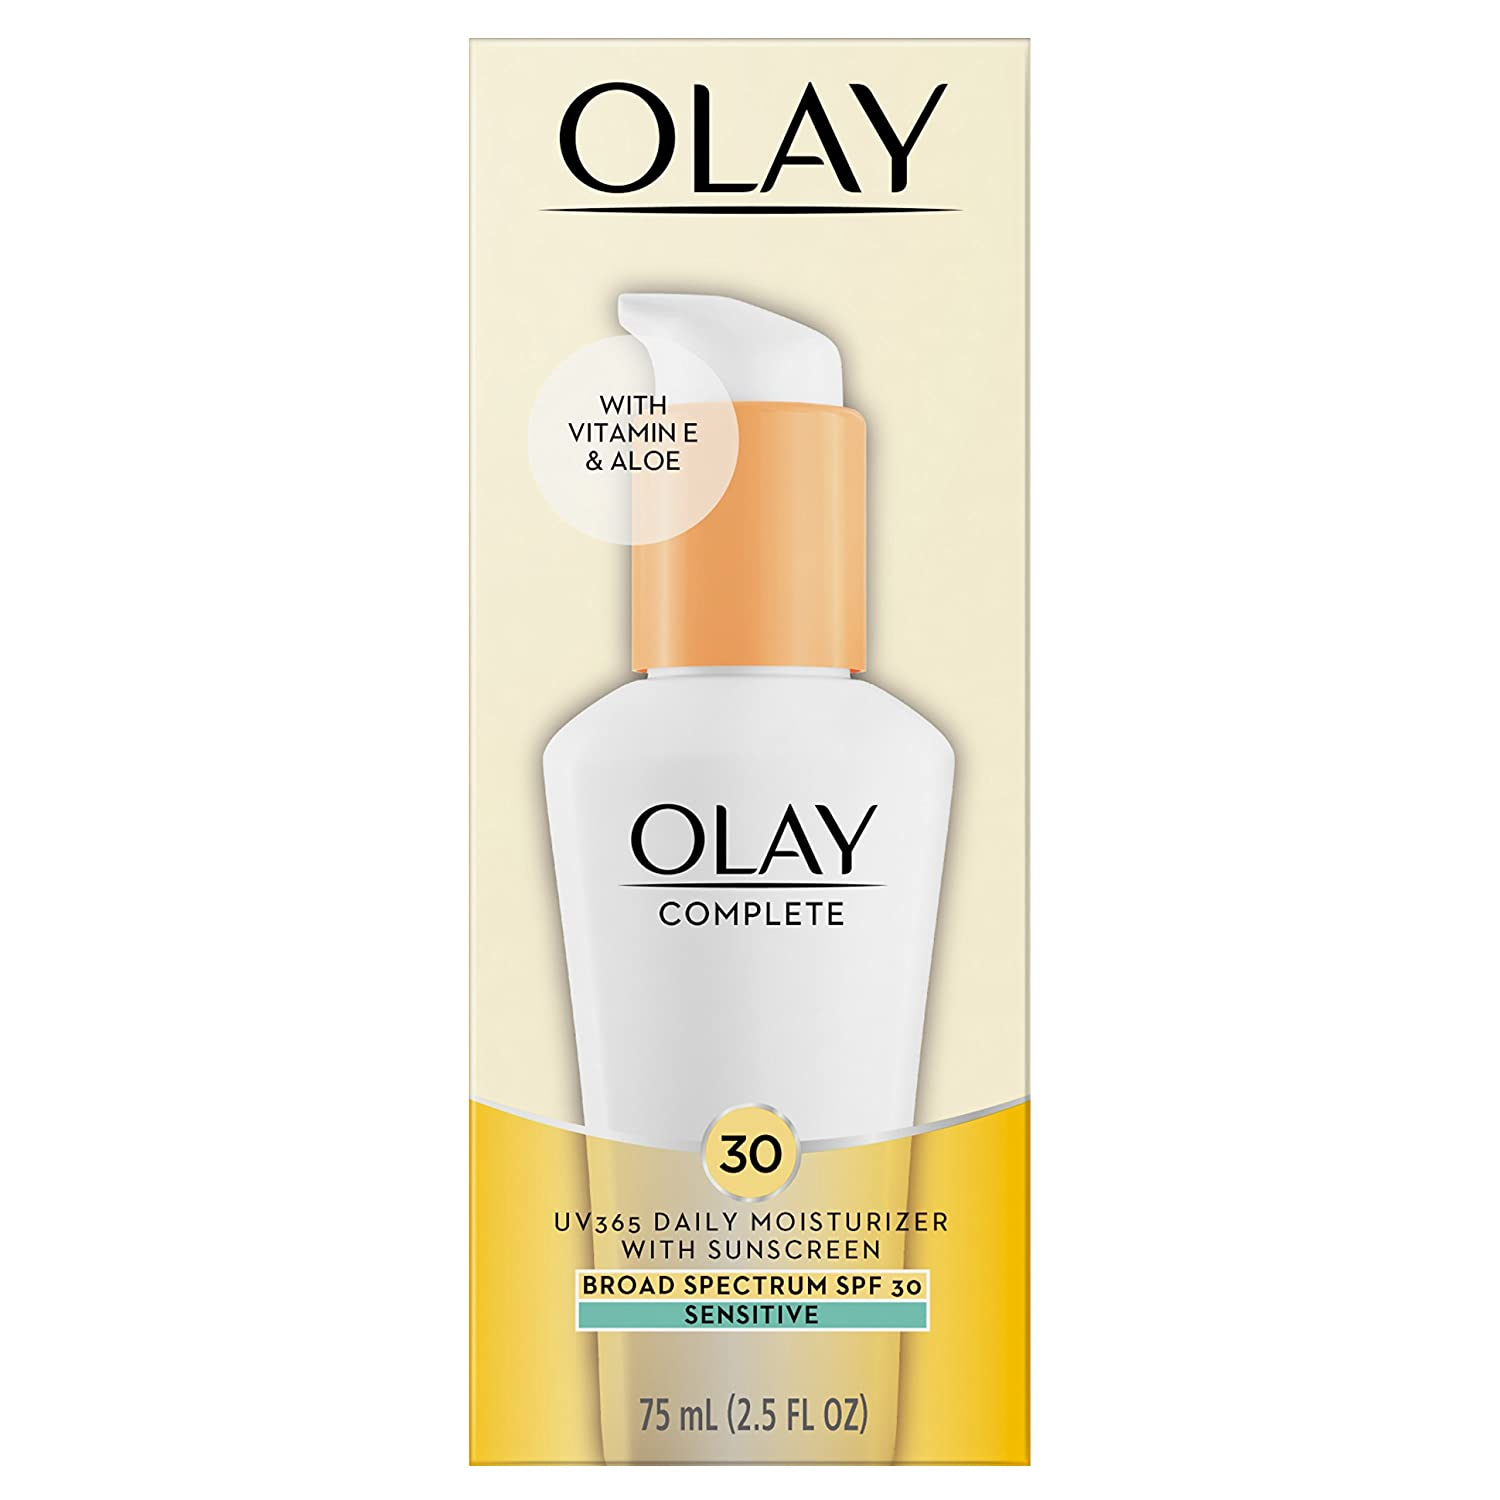 Face Moisturizer by Olay, Complete All Day Moisturizer with Broad Spectrum SPF 30 - Sensitive, 2.5 Fl Oz